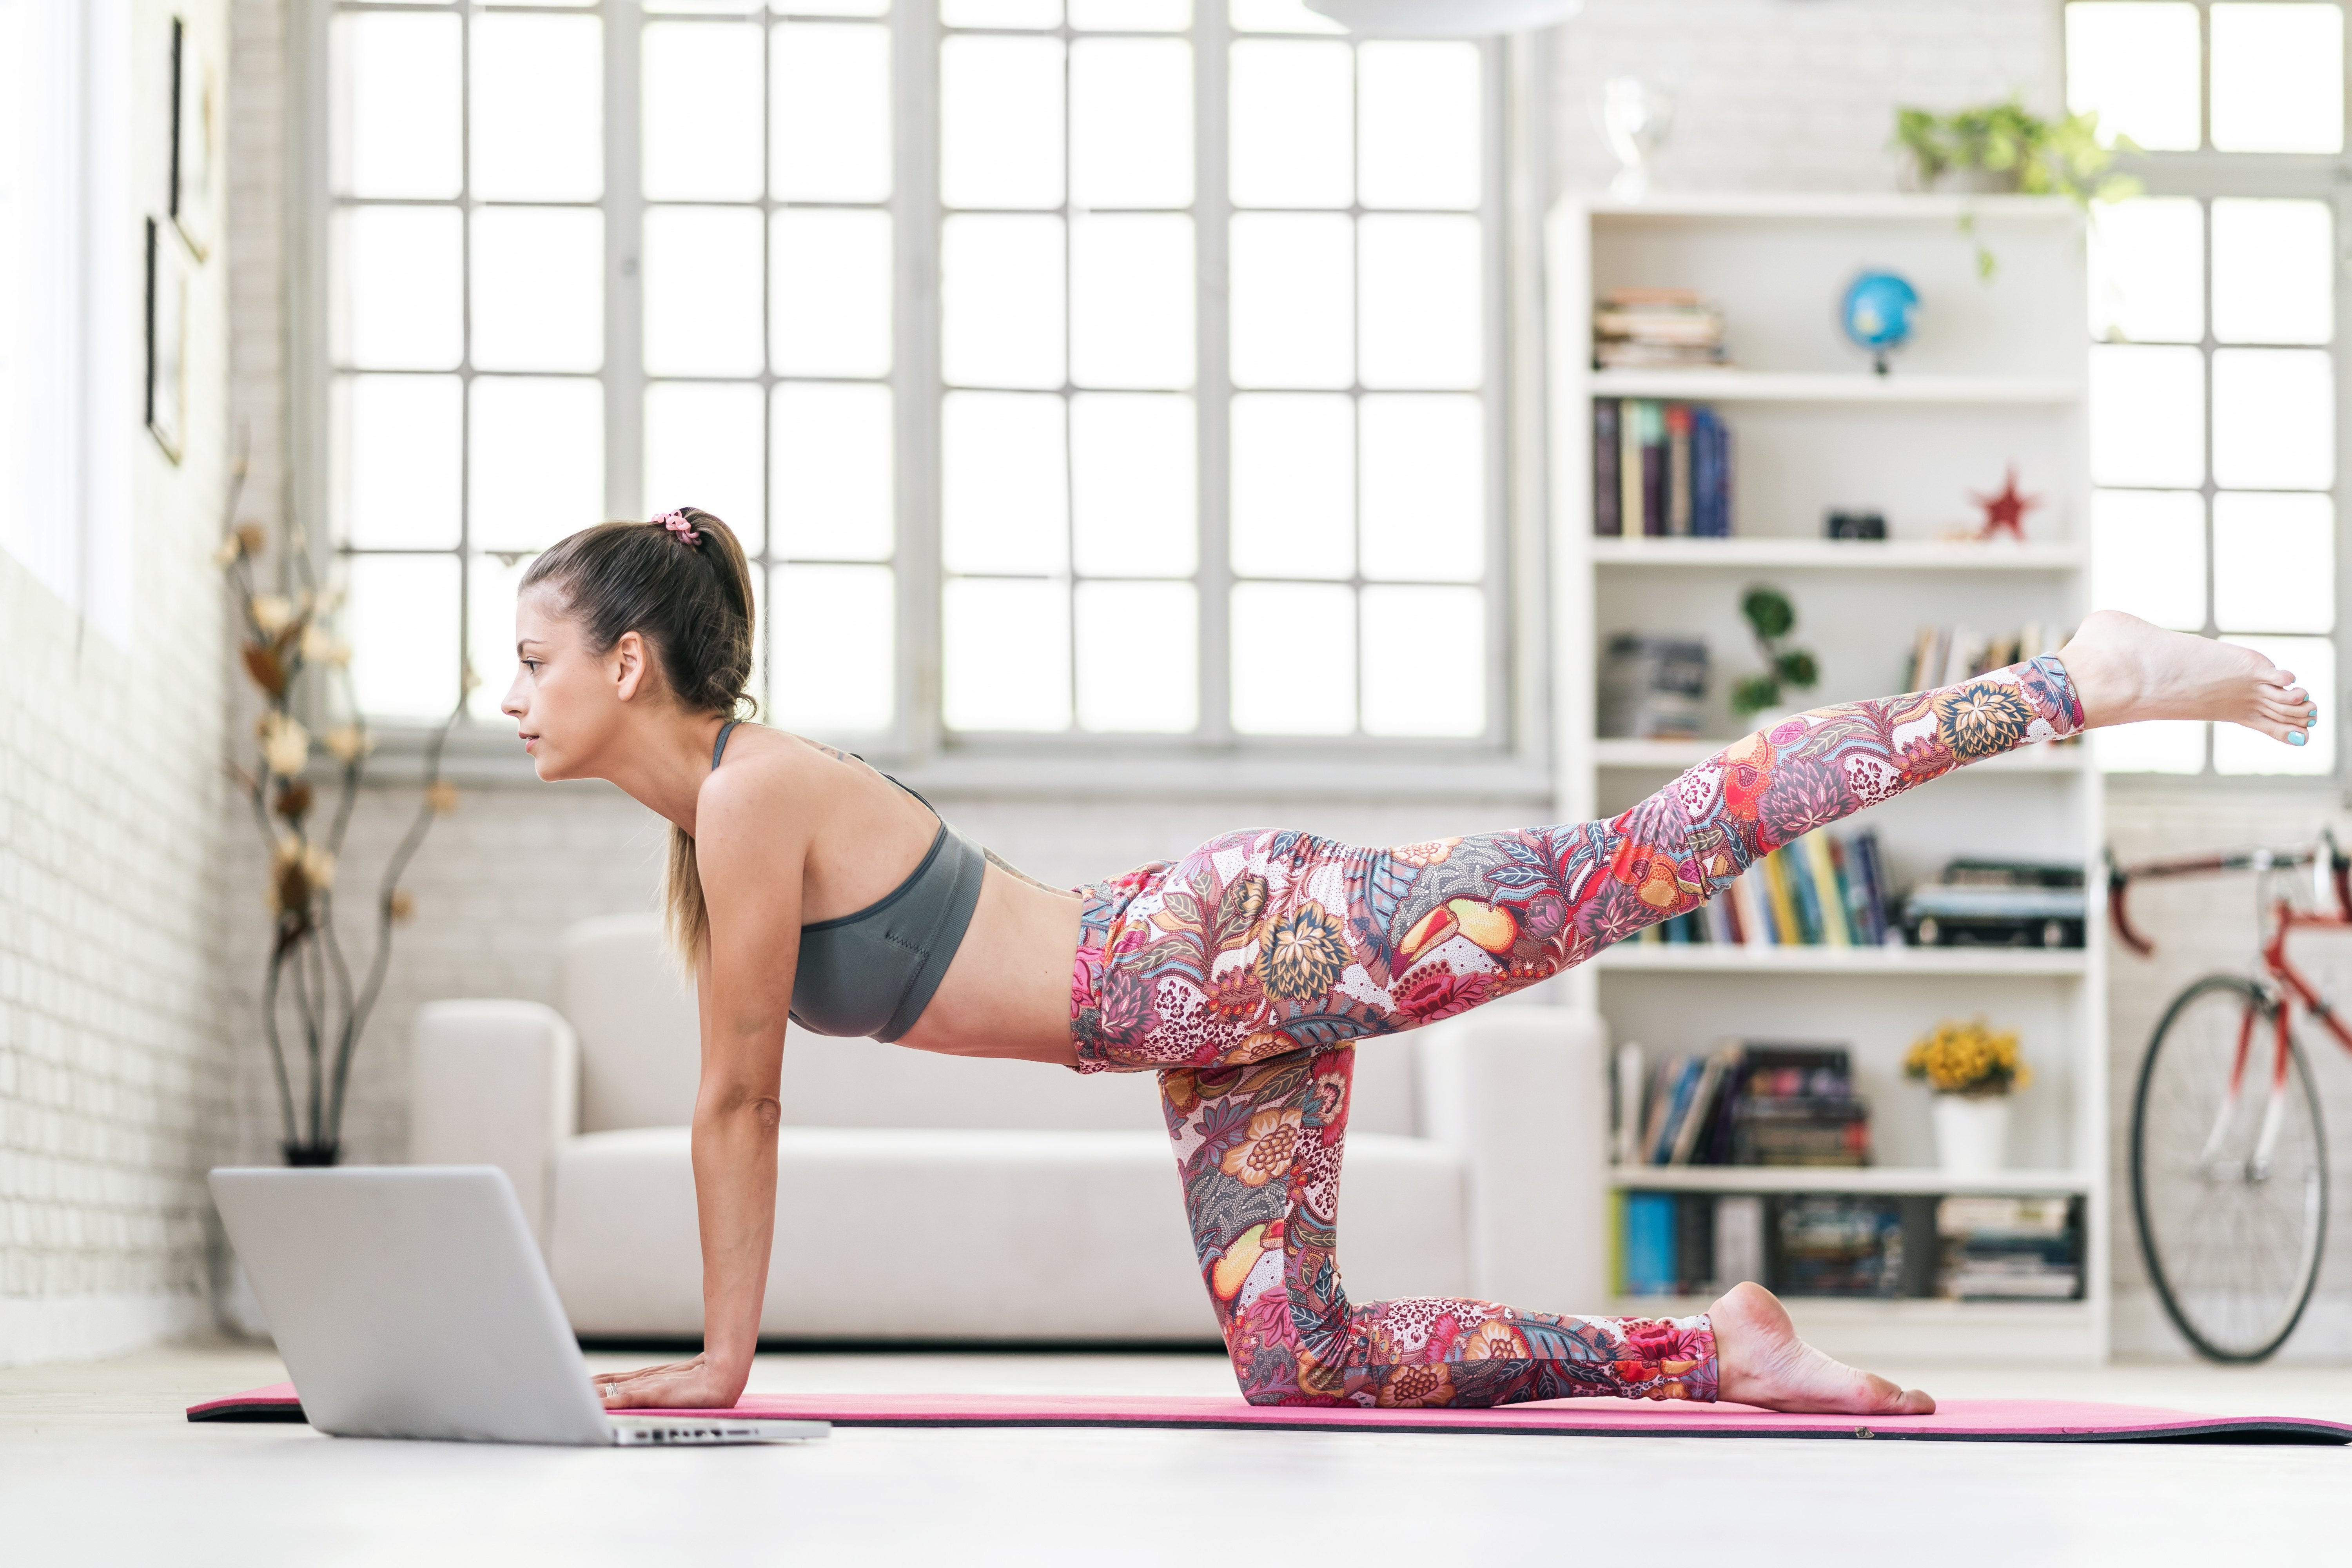 5 Live-Stream Workouts That Turn Your Living Room Into a Fitness Studio